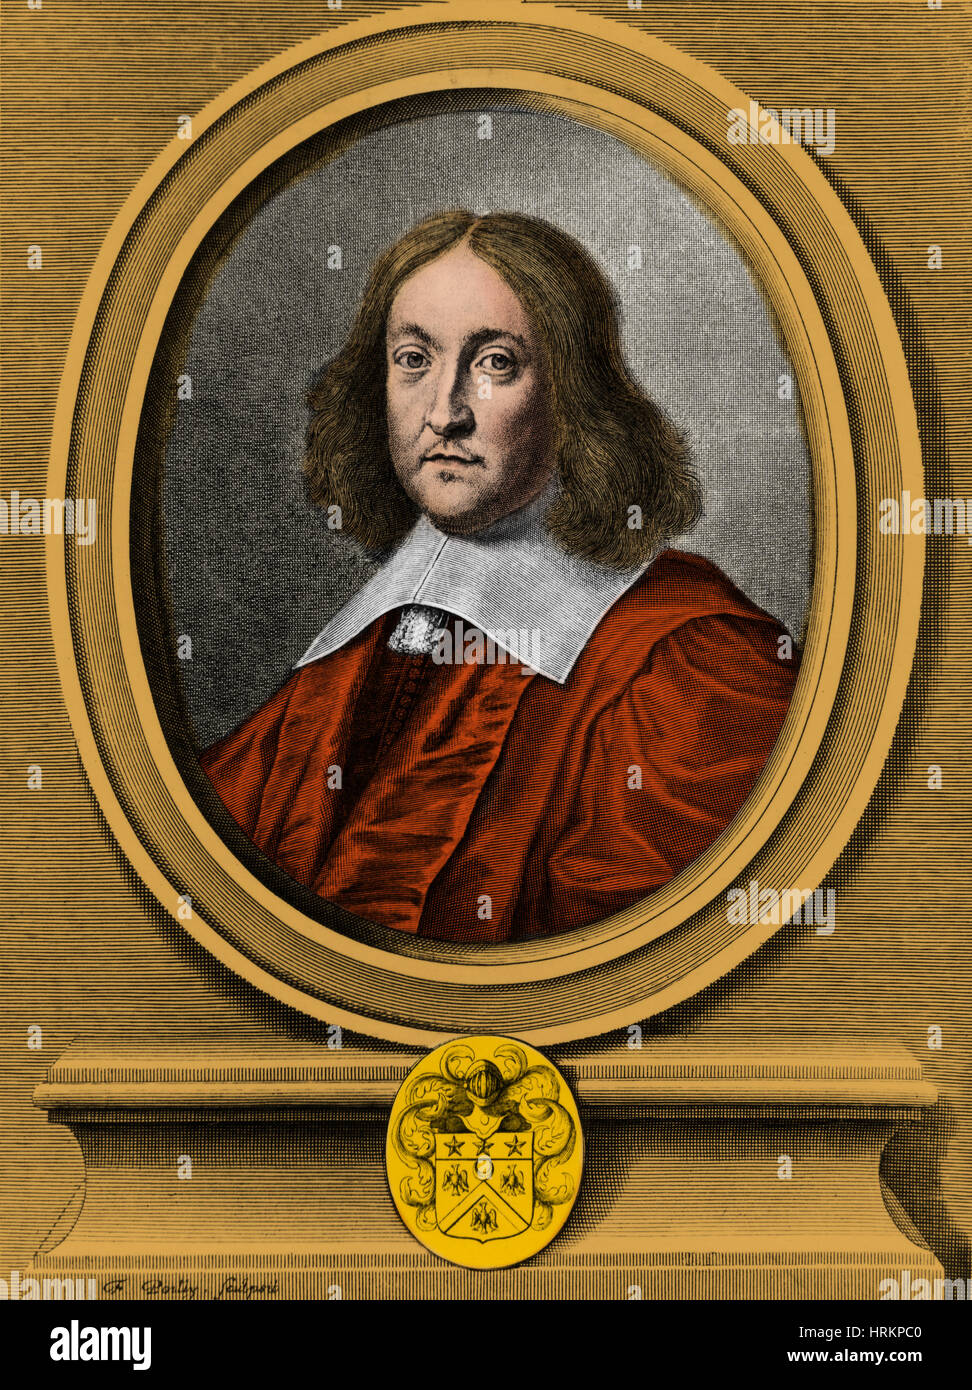 an introduction to the life of pierre de fermat Fermat's one proof in his life, pierre de fermat only left one proof in relation to number theory  he used his method of infinite descent to show that the area of a right triangle cannot be a square within the domain of whole numbers.